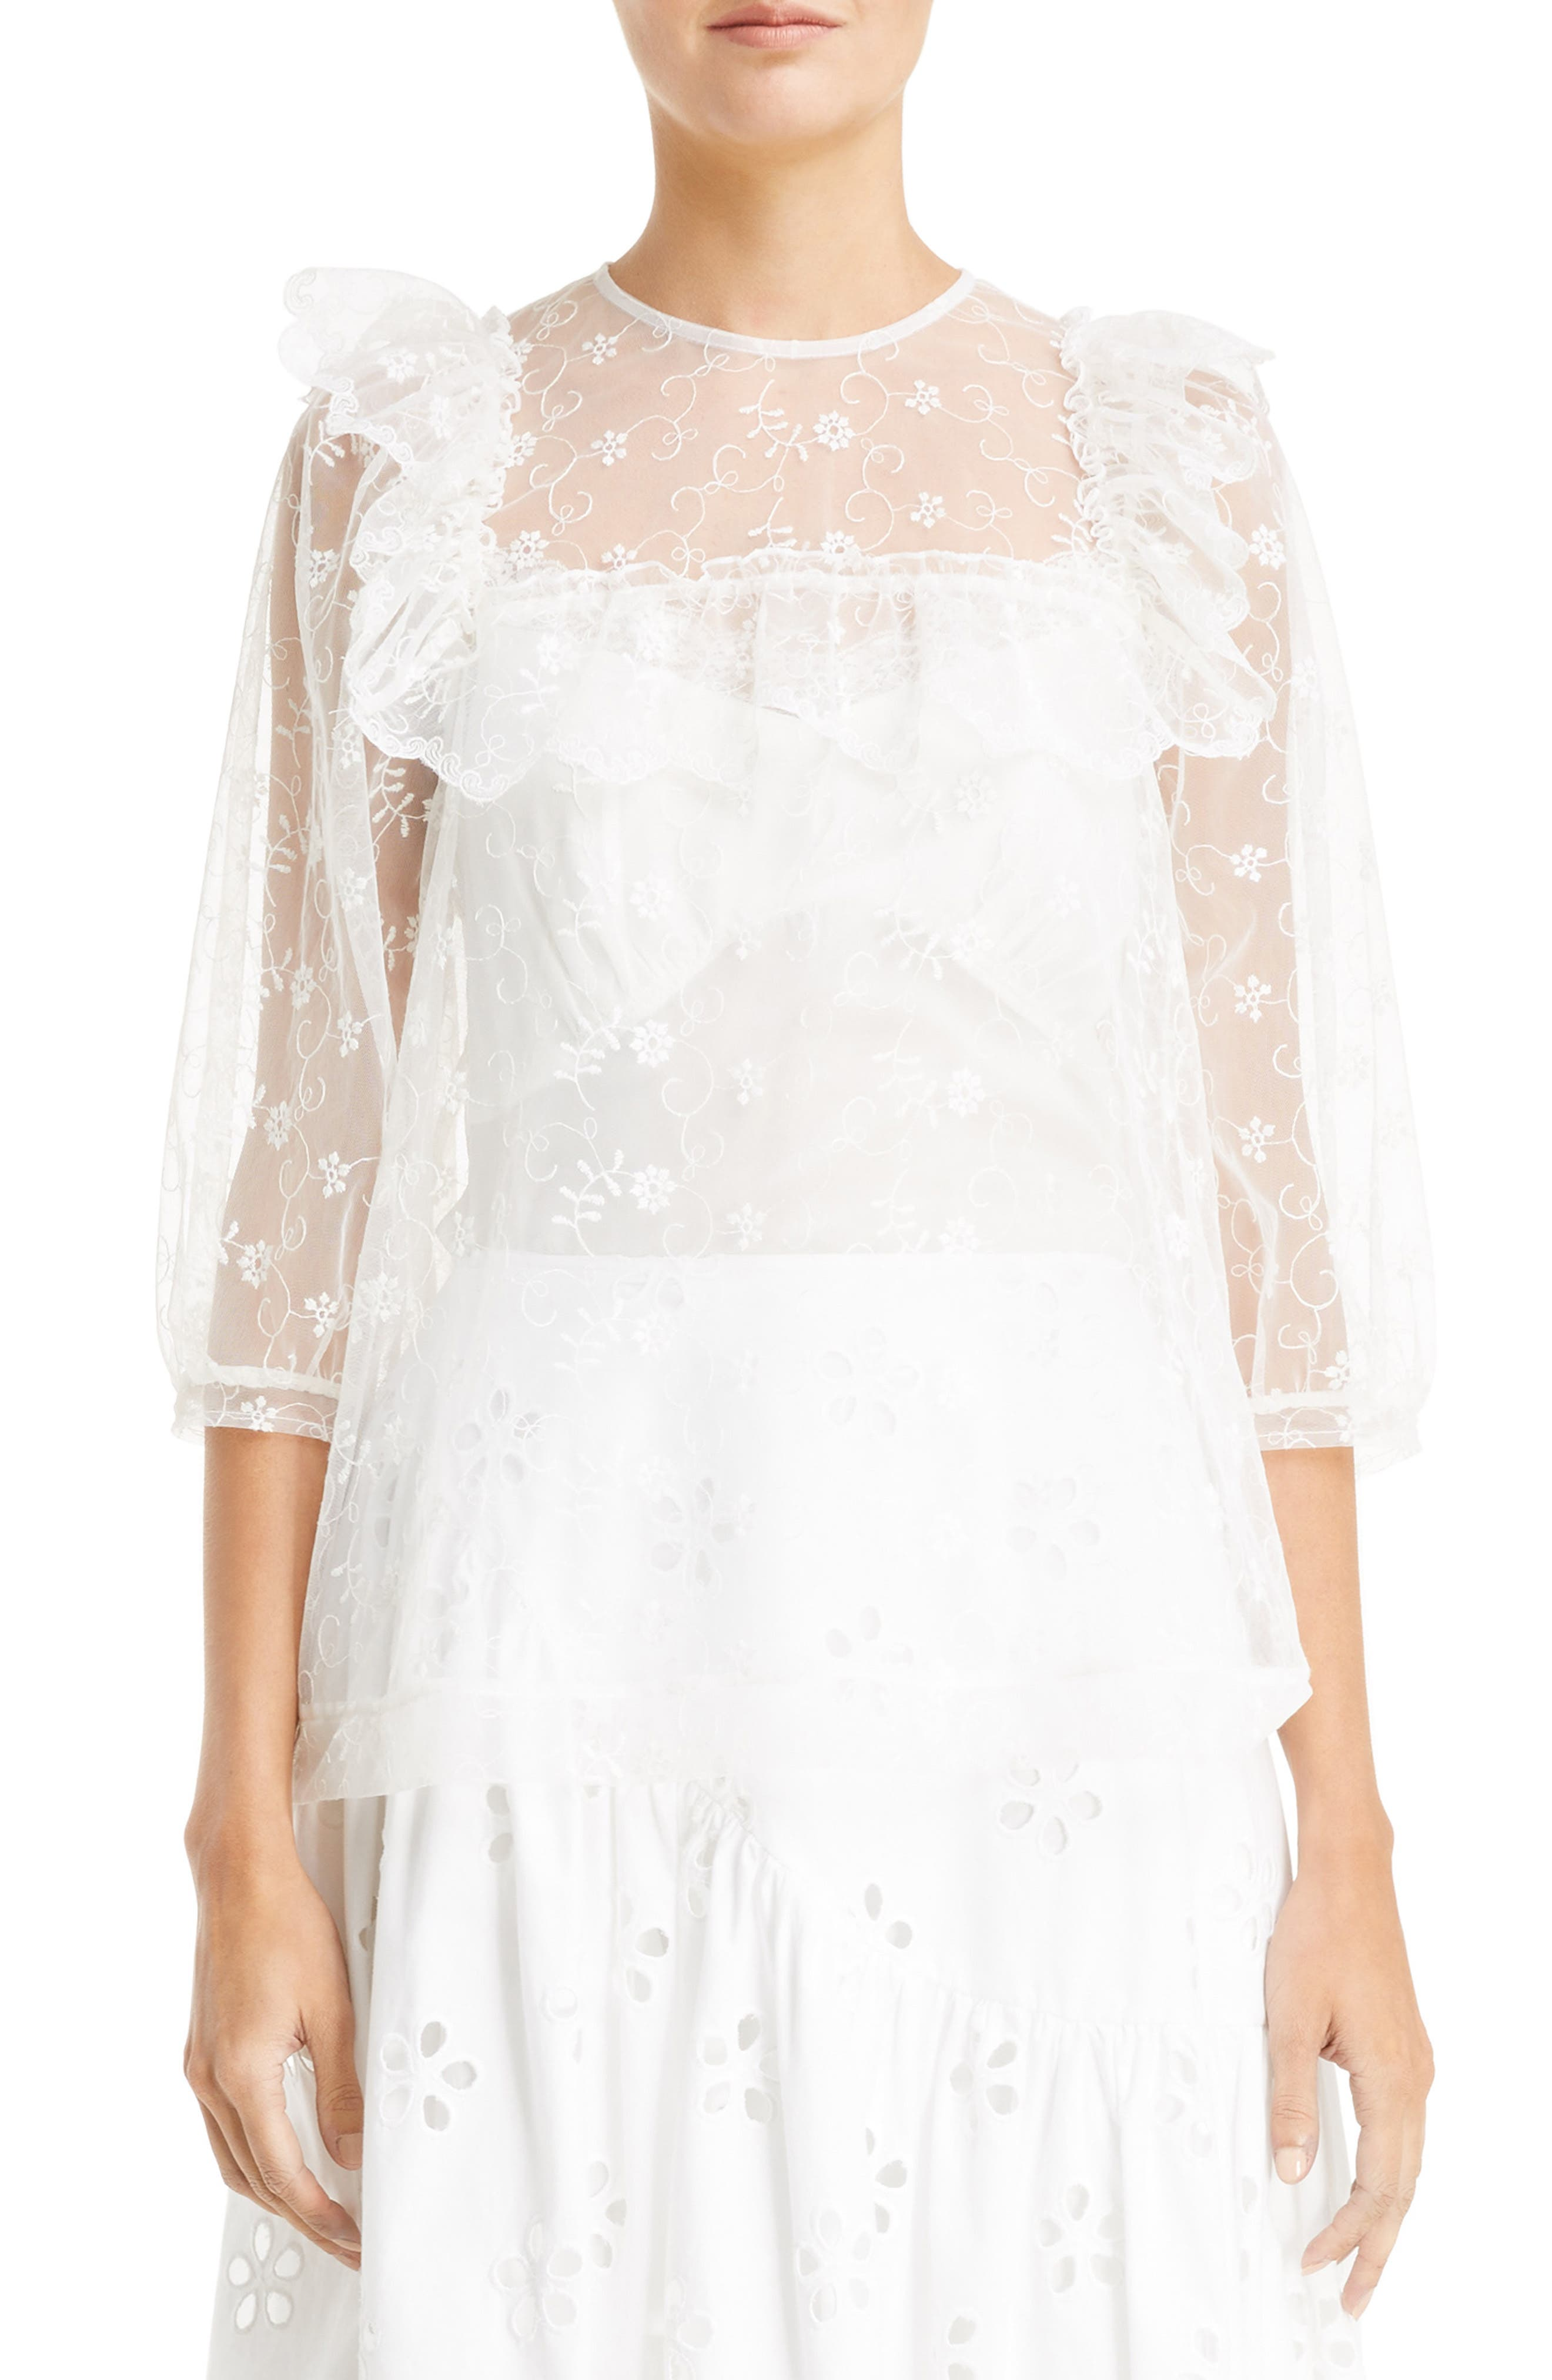 Simone Rocha Frilled Bib Embroidered Tulle Top